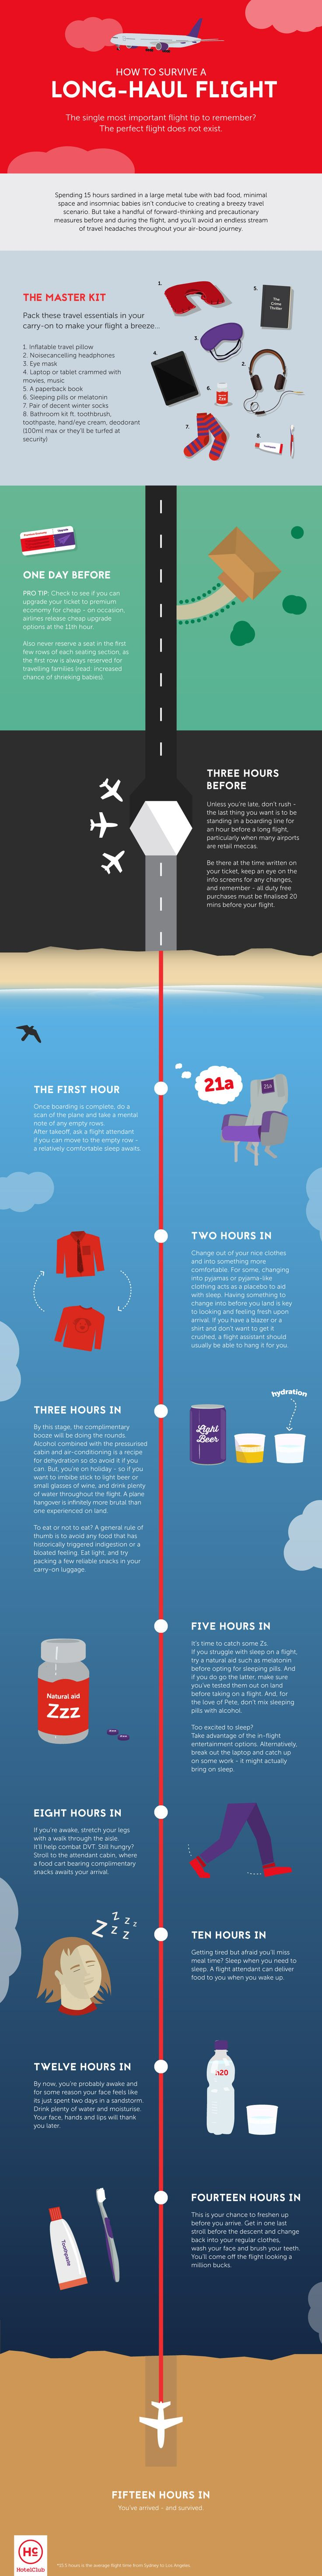 How to Survive a Long-Haul Flight [Infographic]